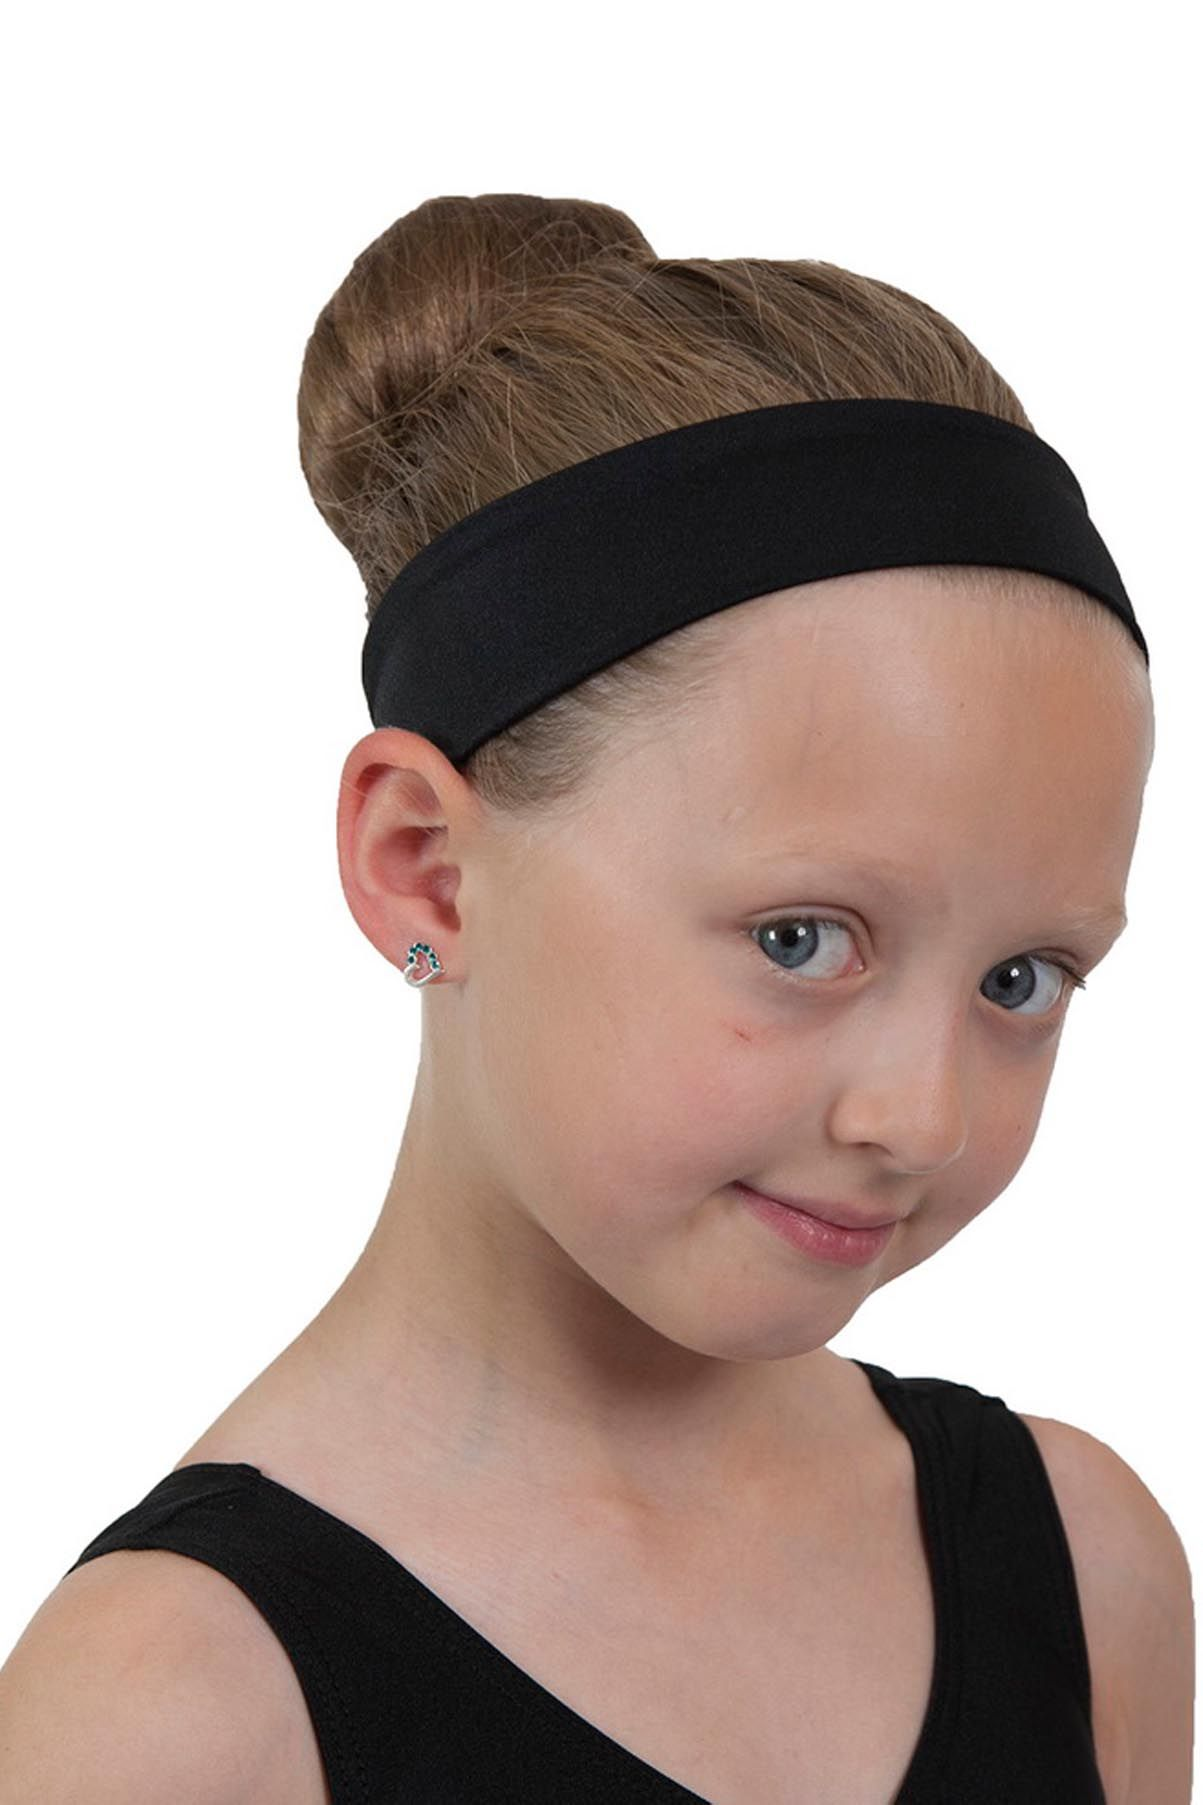 Uniform Black Headband (IDS)